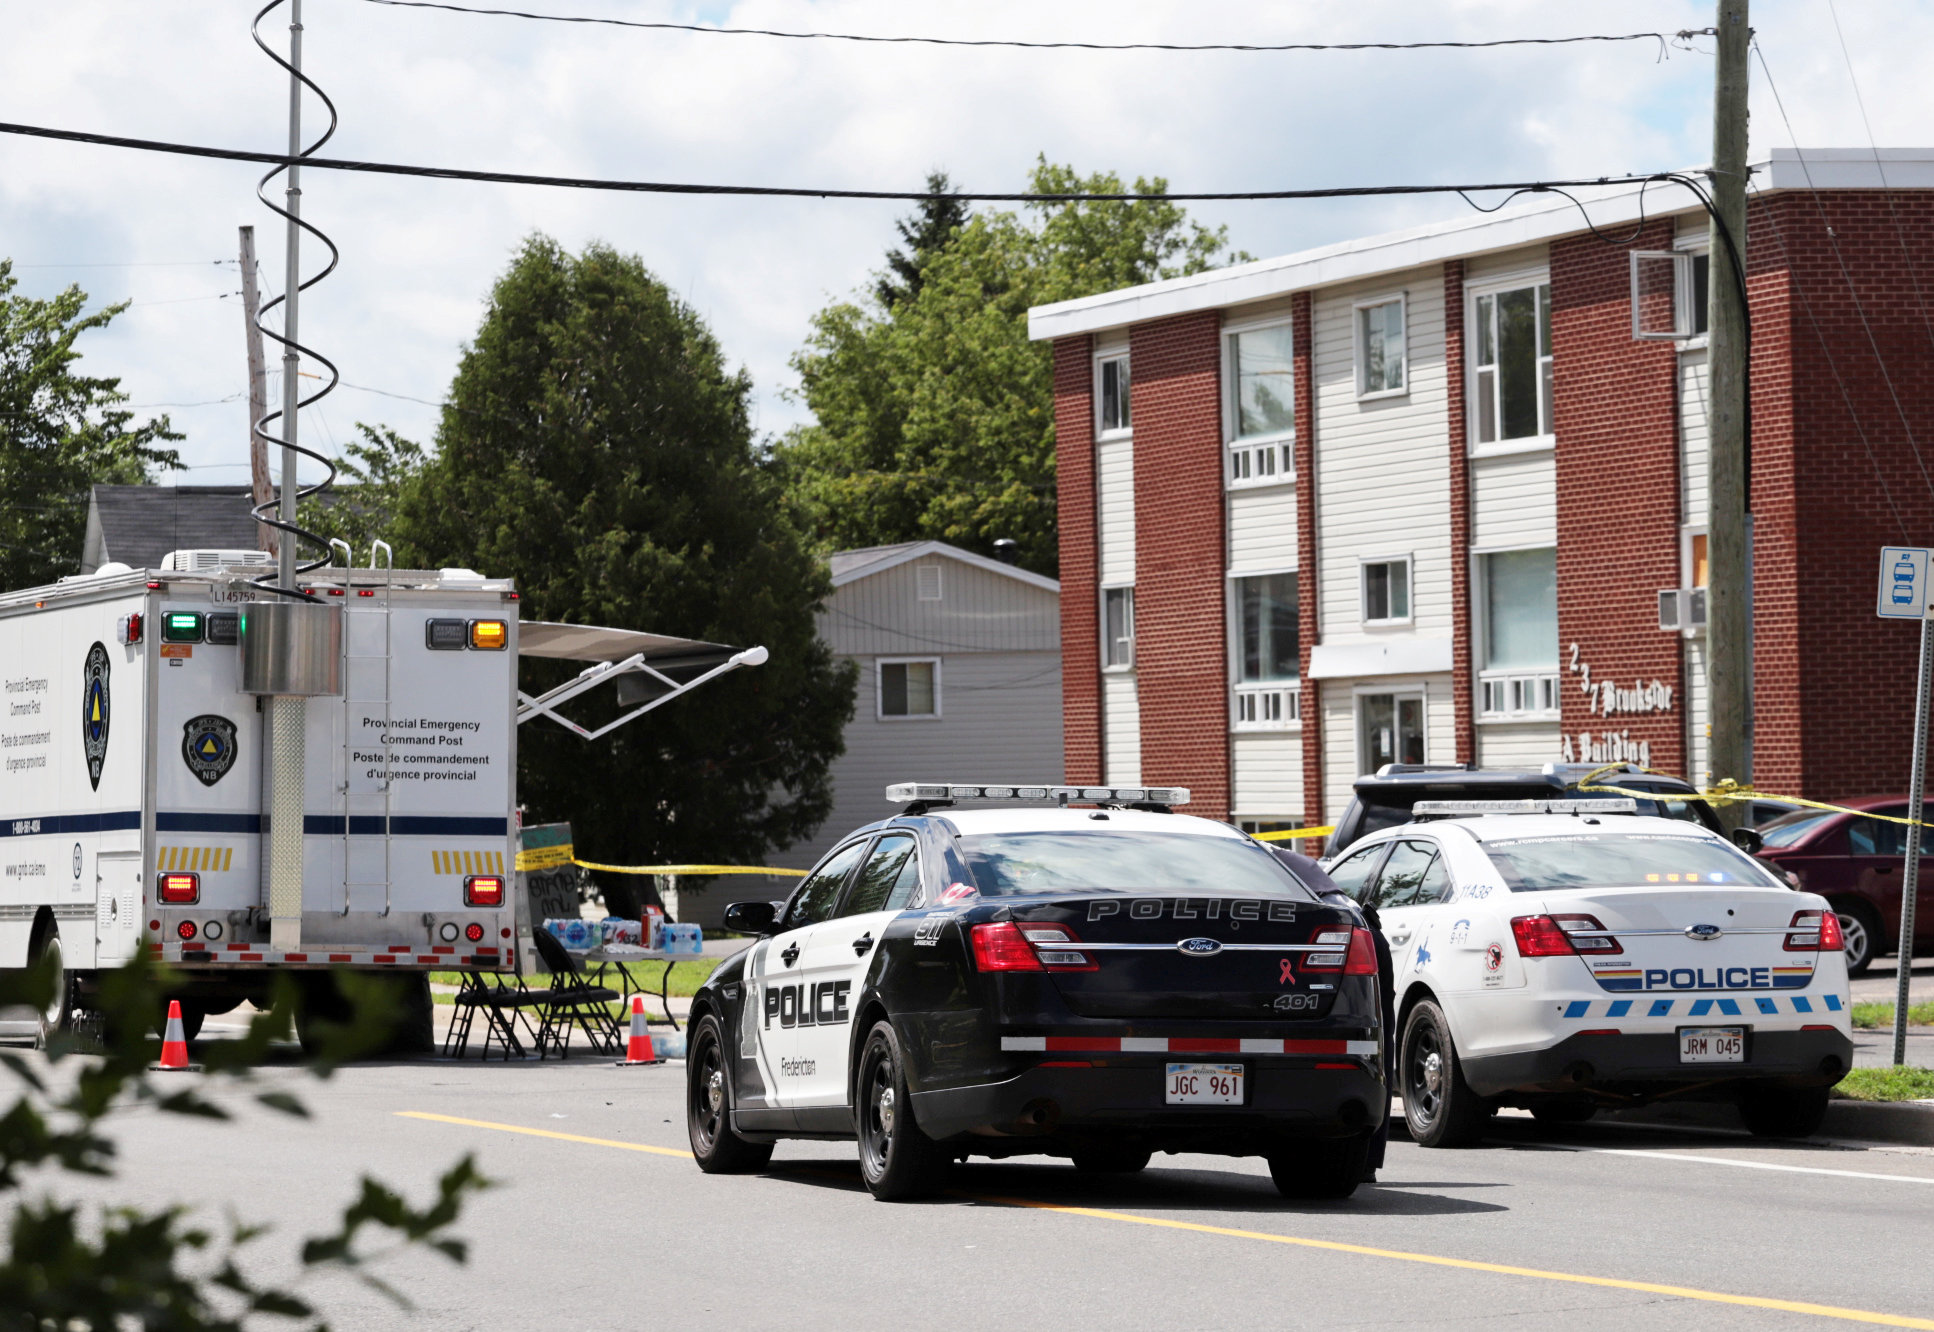 Fredericton Police and Royal Canadian Mounted Police (RCMP) investigate apartment complex which was the scene of a shooting incident in Fredericton